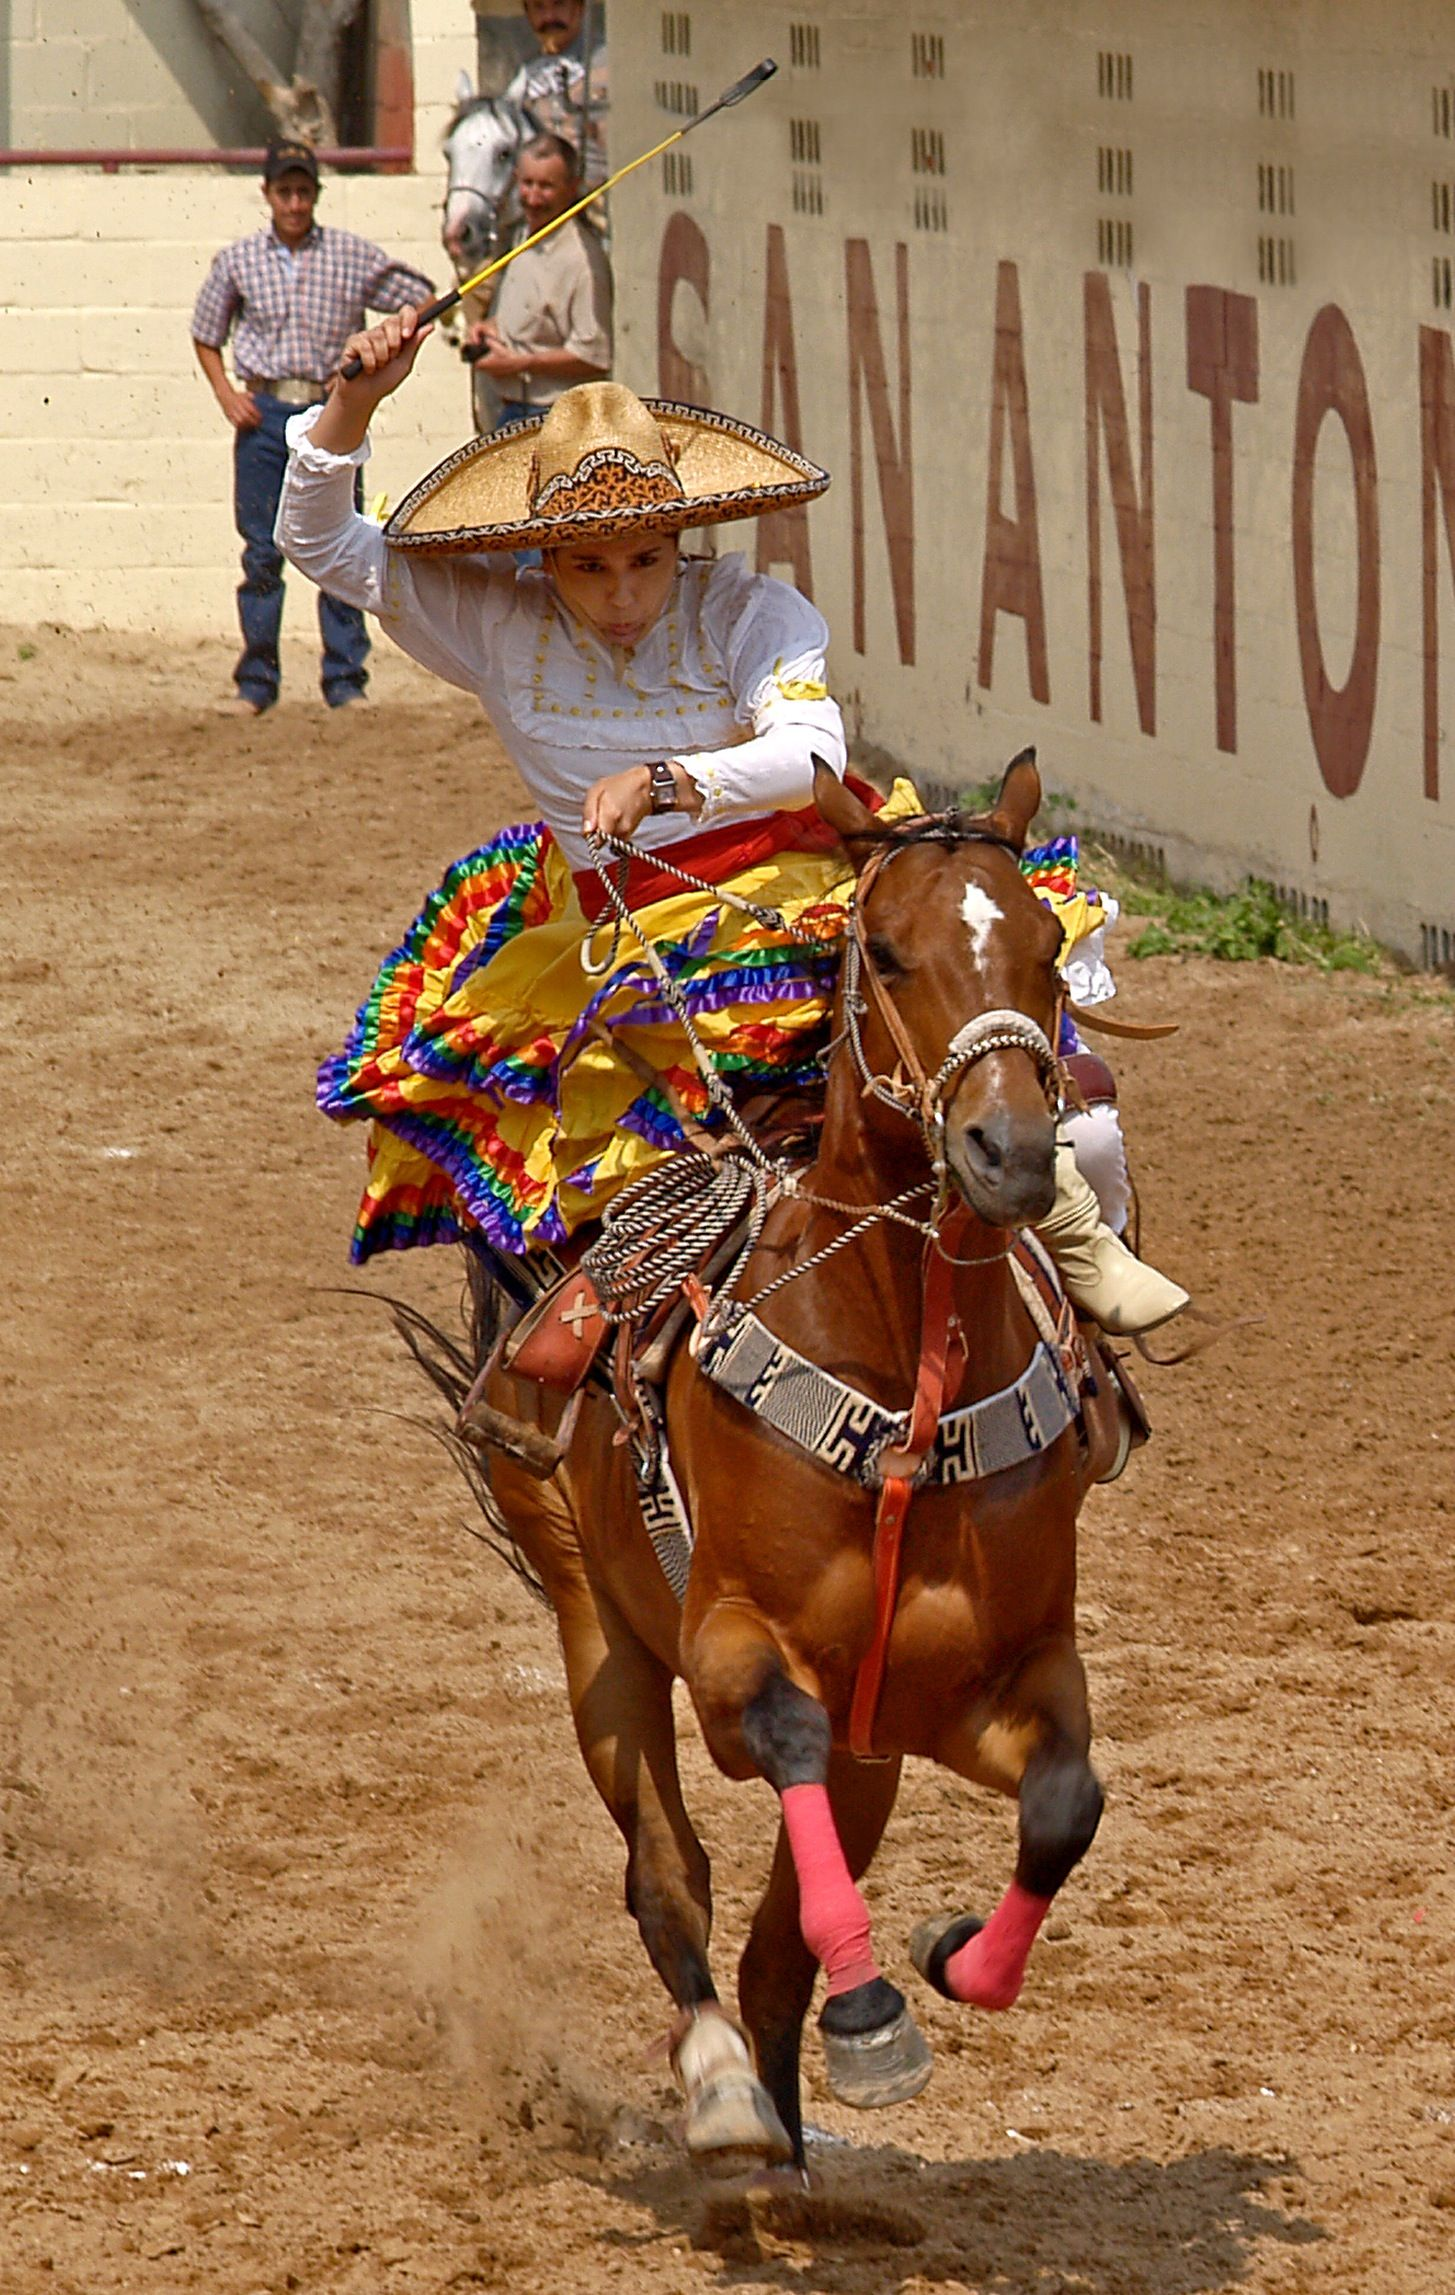 Charro ranch in san antonio has over 60 years of tradition